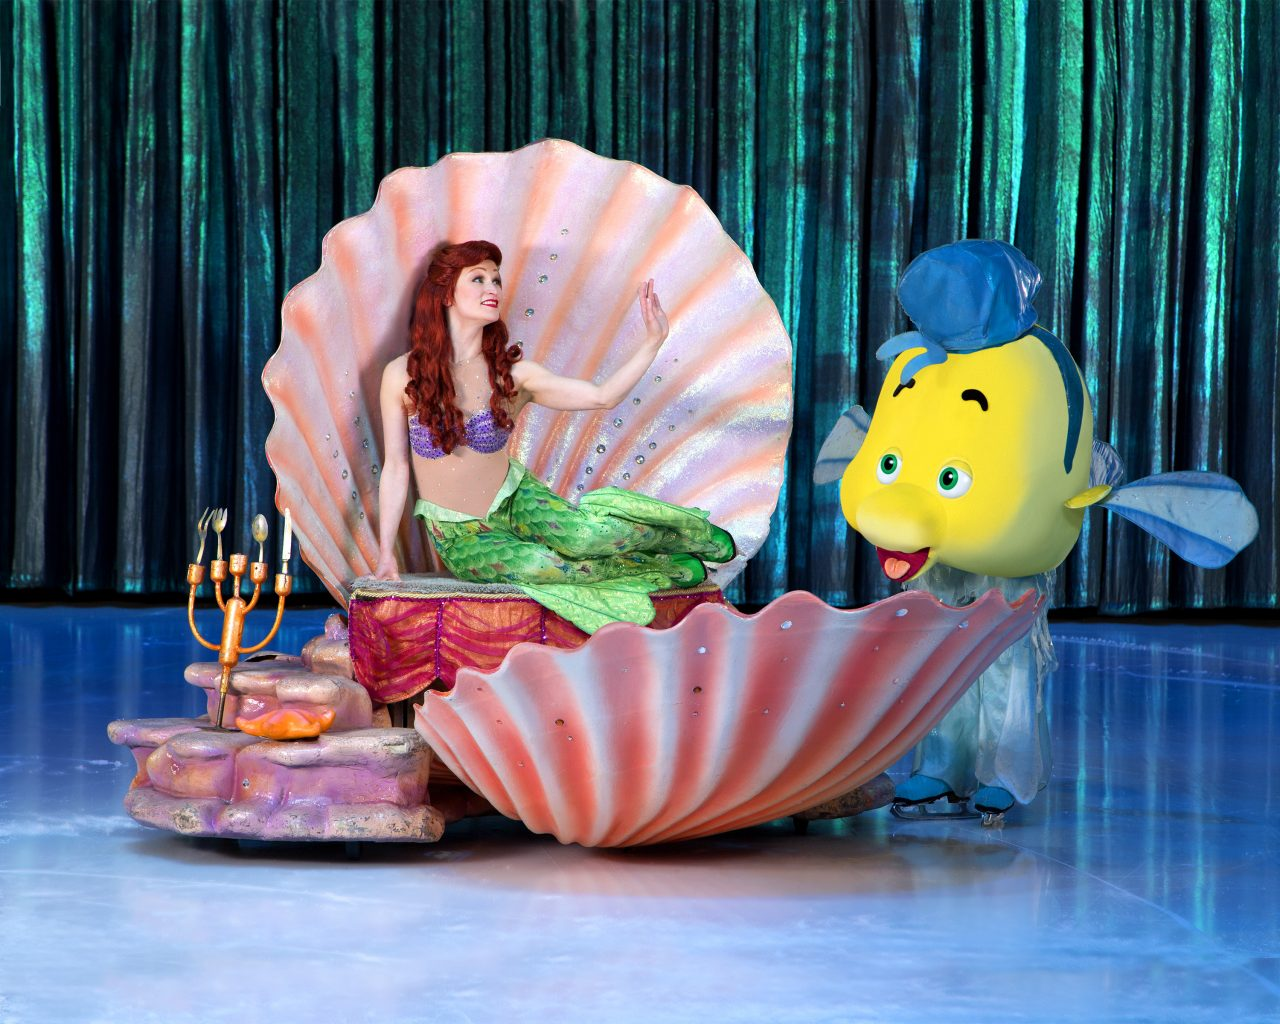 Disney on Ice comes to Manchester this October